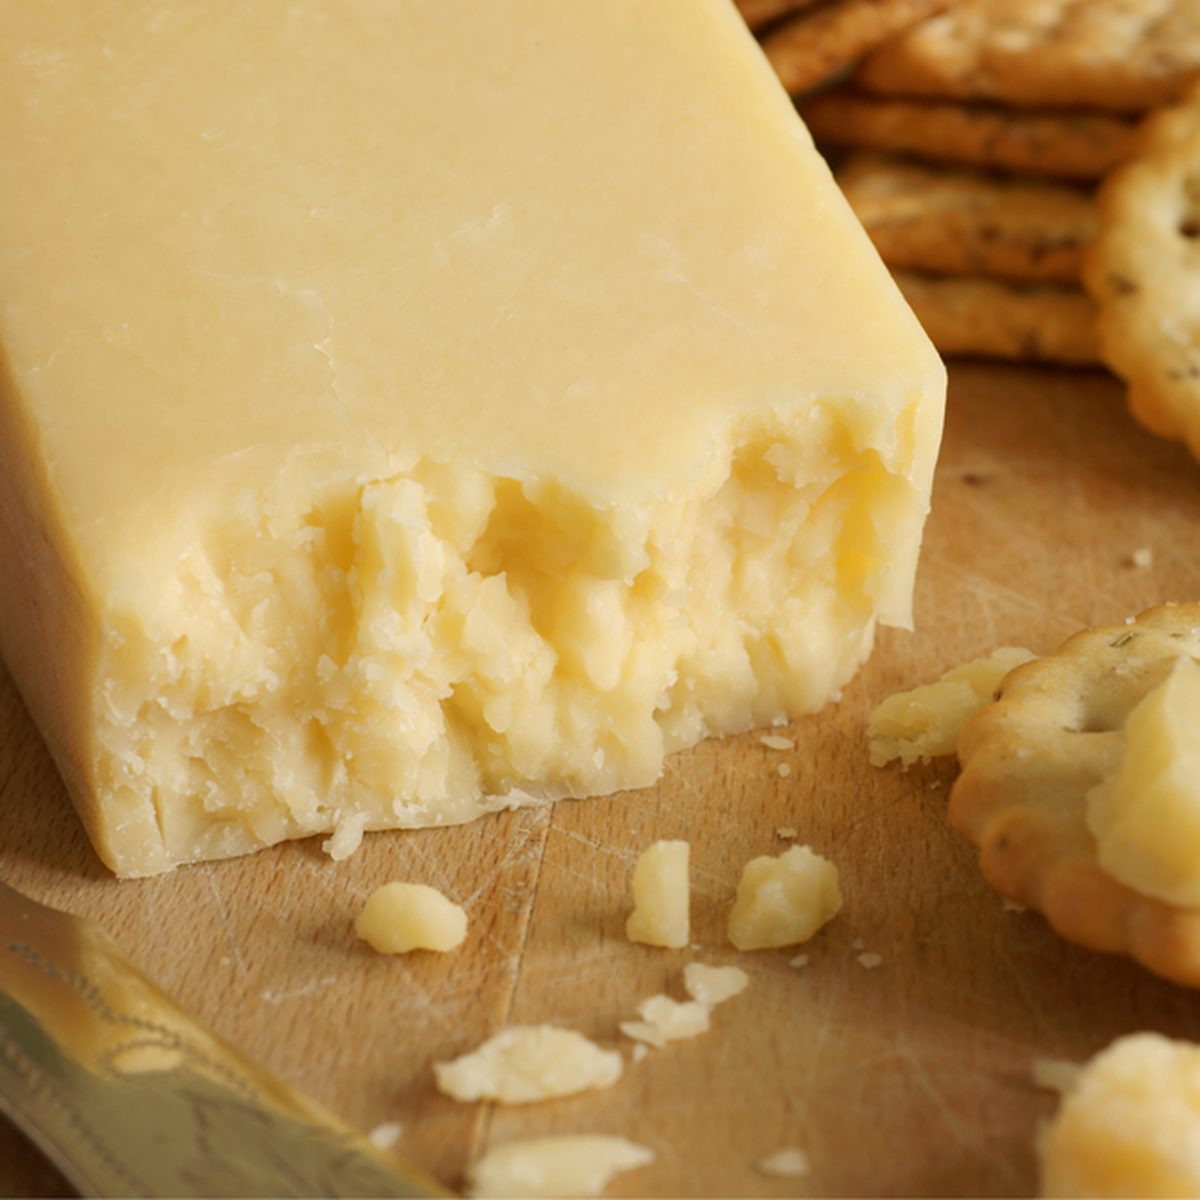 Lancashire a traditional English cheese from the county of Lancashire